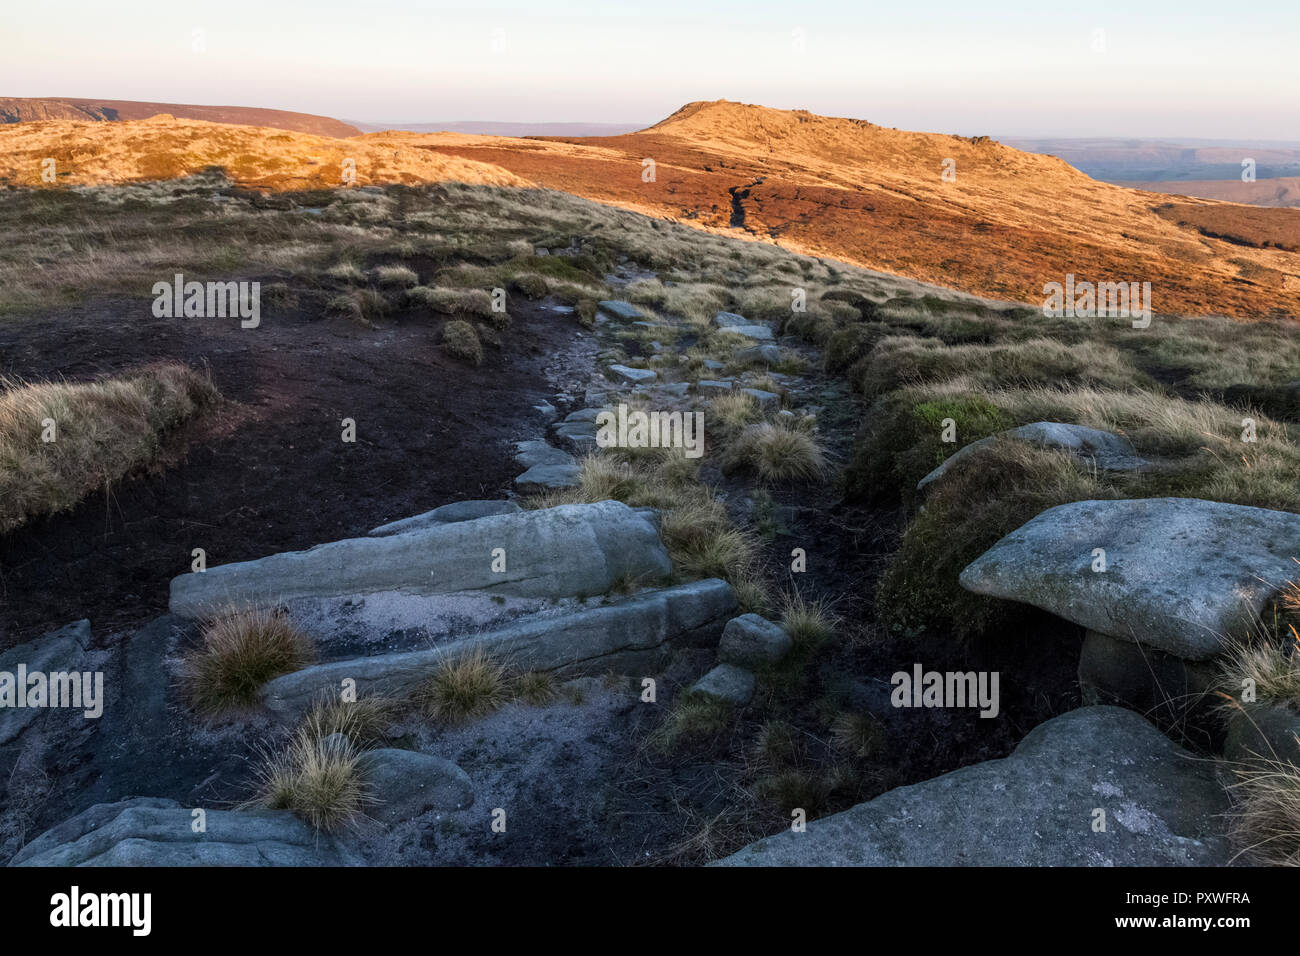 Grindslow Knoll rising up on the southern edge of Kinder Scout in September sunlight. Kinder Scout, Derbyshire, Peak District, England, UK. - Stock Image